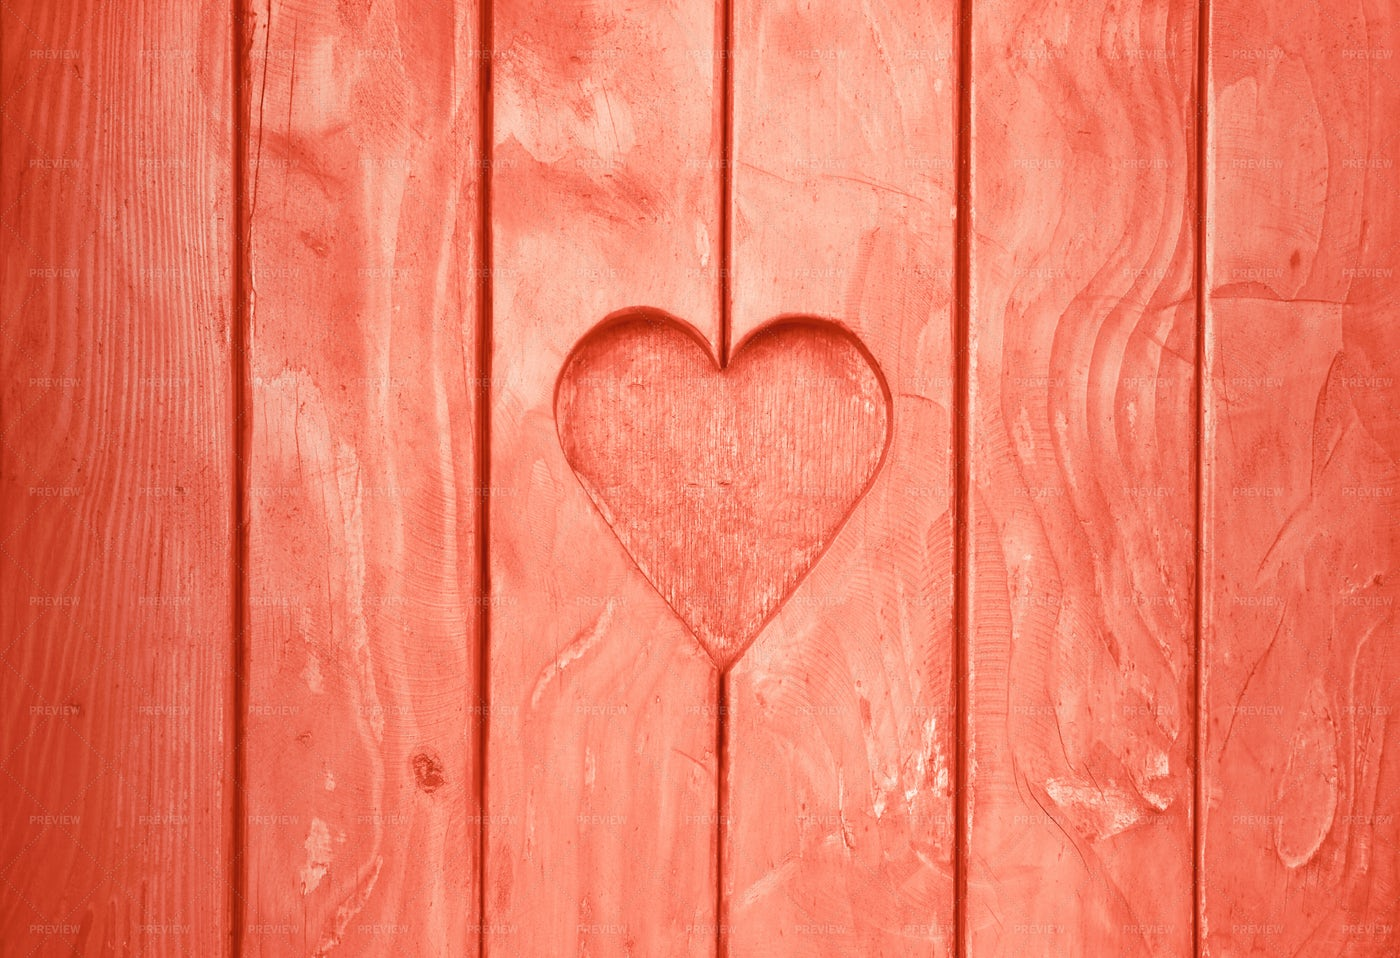 Heart Shaped In Wood: Stock Photos